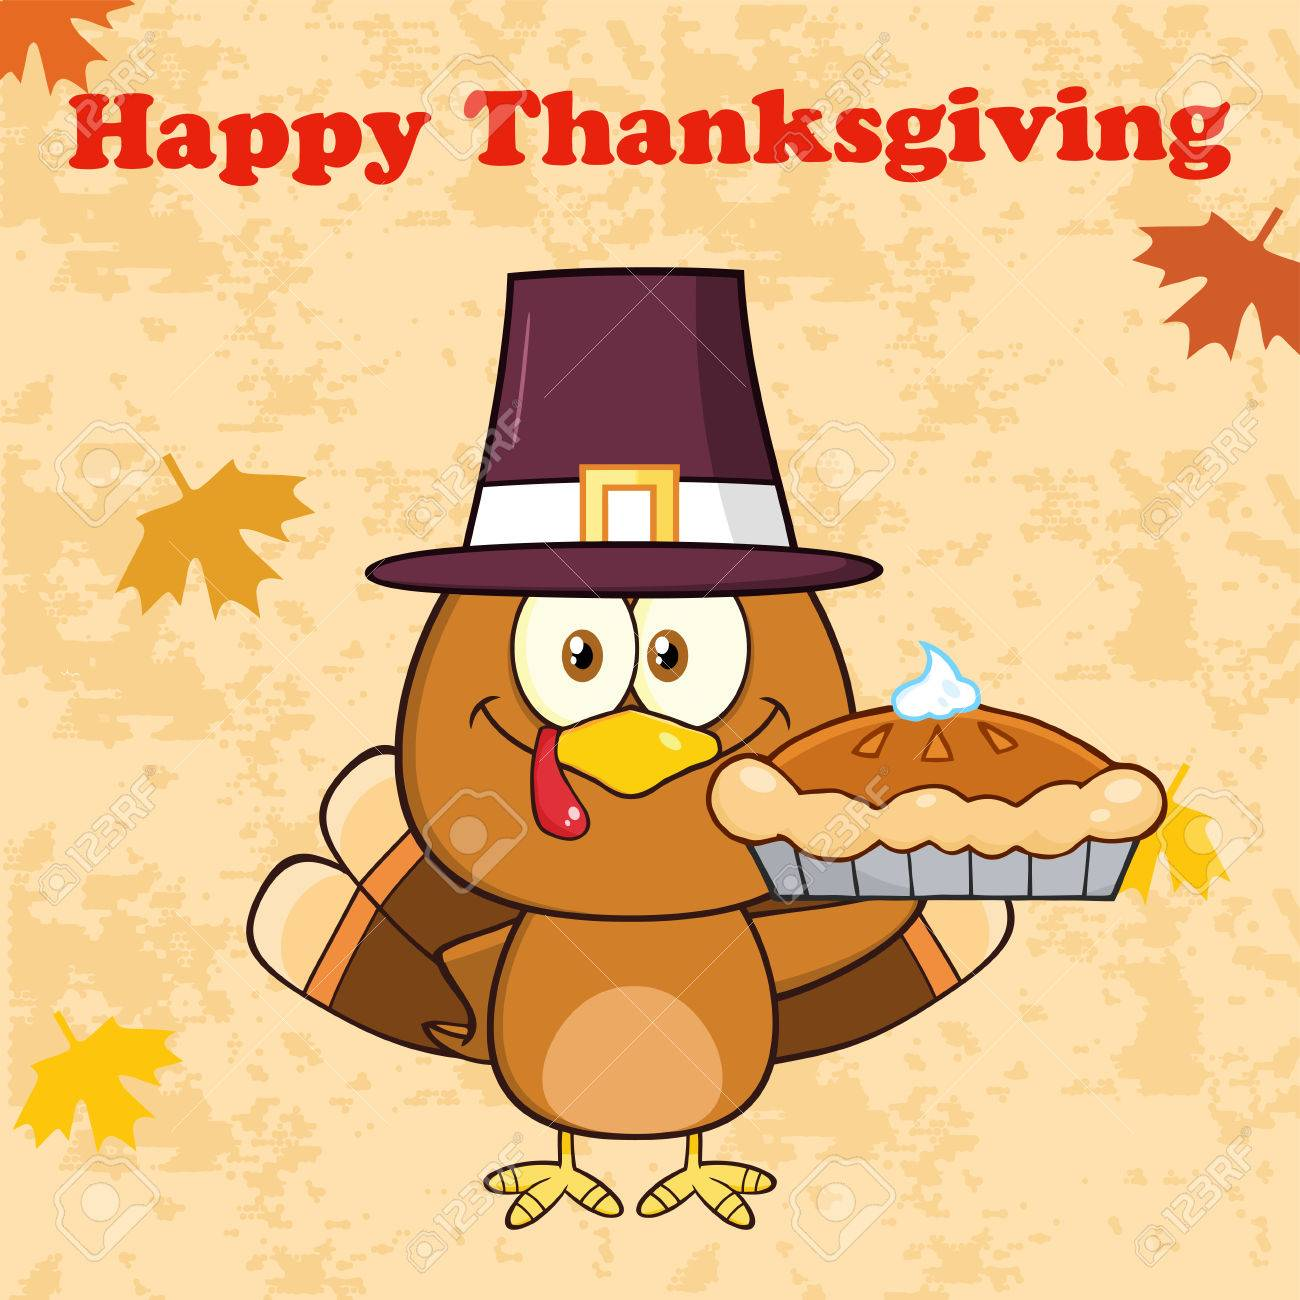 Image result for royalty free images cute happy thanksgiving